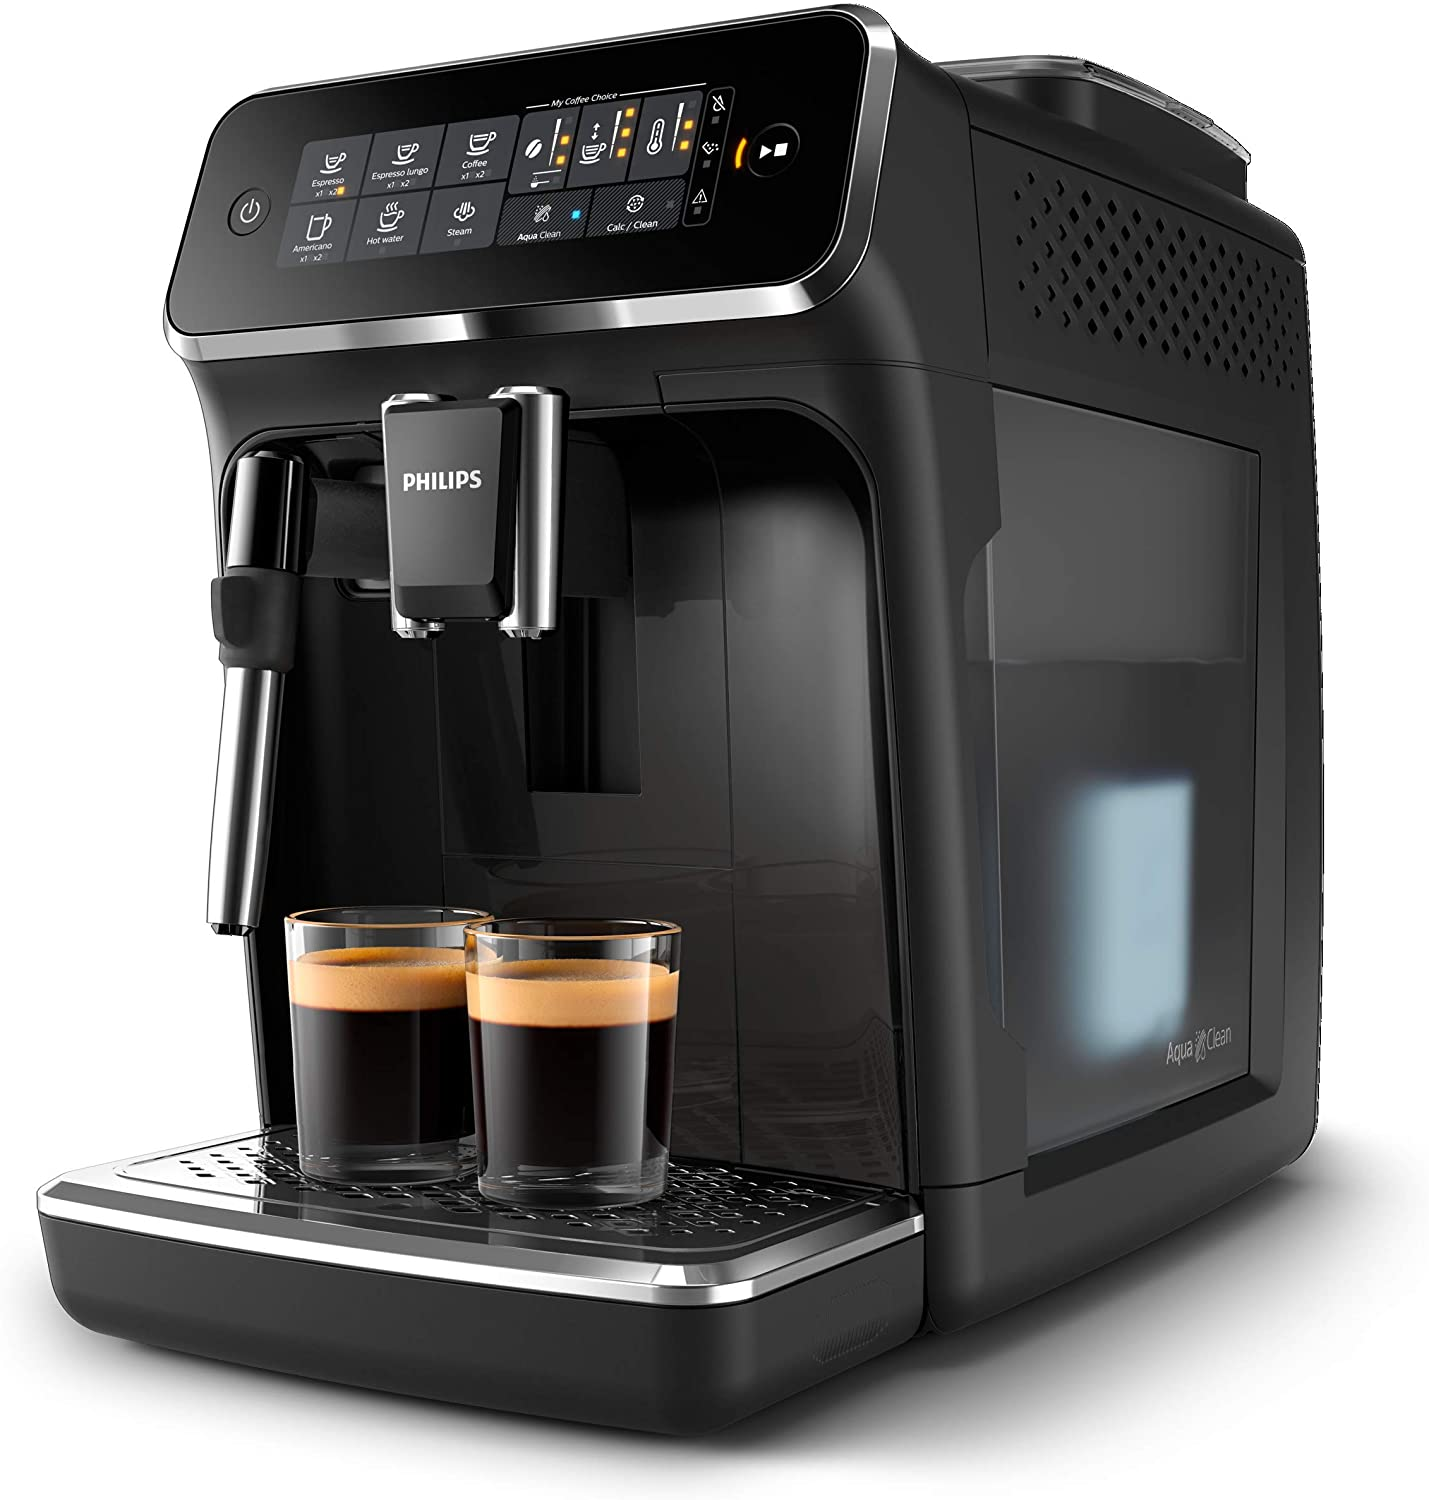 Amazon.com: Philips 3200 Series Máquina de espresso ...